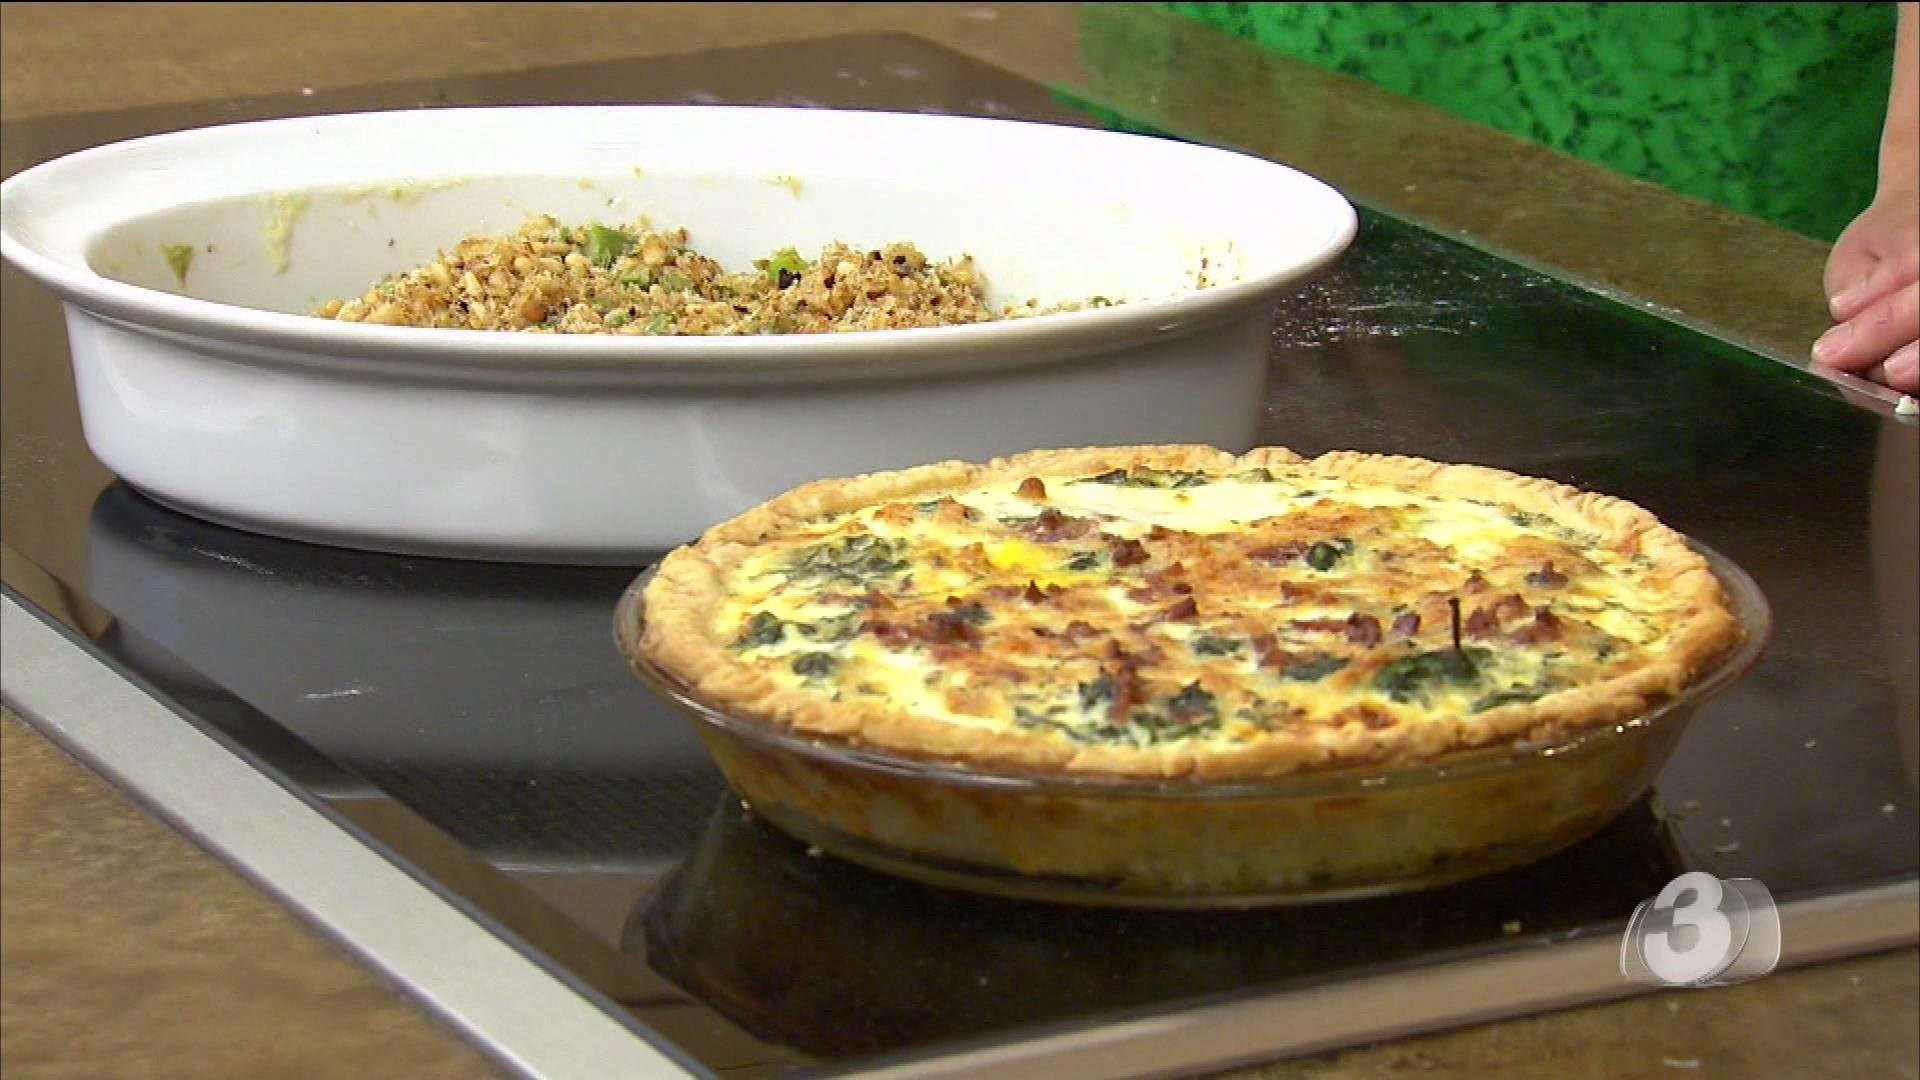 Spring Greens Quiche and Asparagus Gratin - Arizona's Family